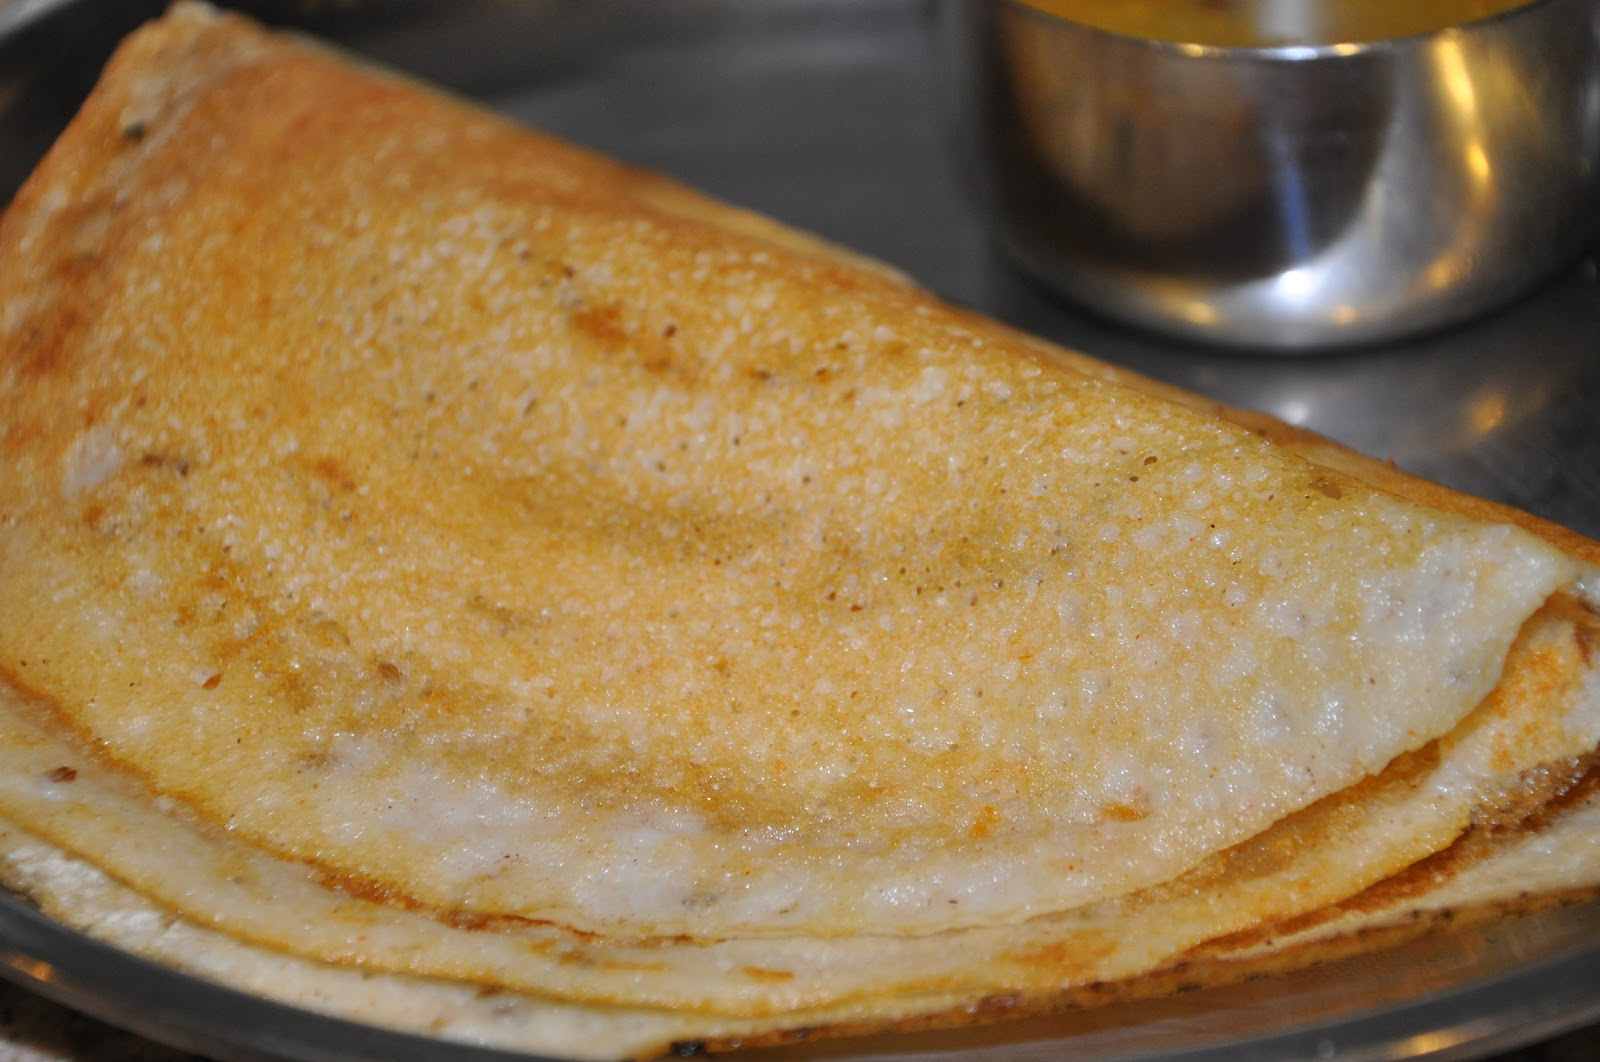 ... State in Western India: Plain Dosa (Rice and Lentils Savory Crepes